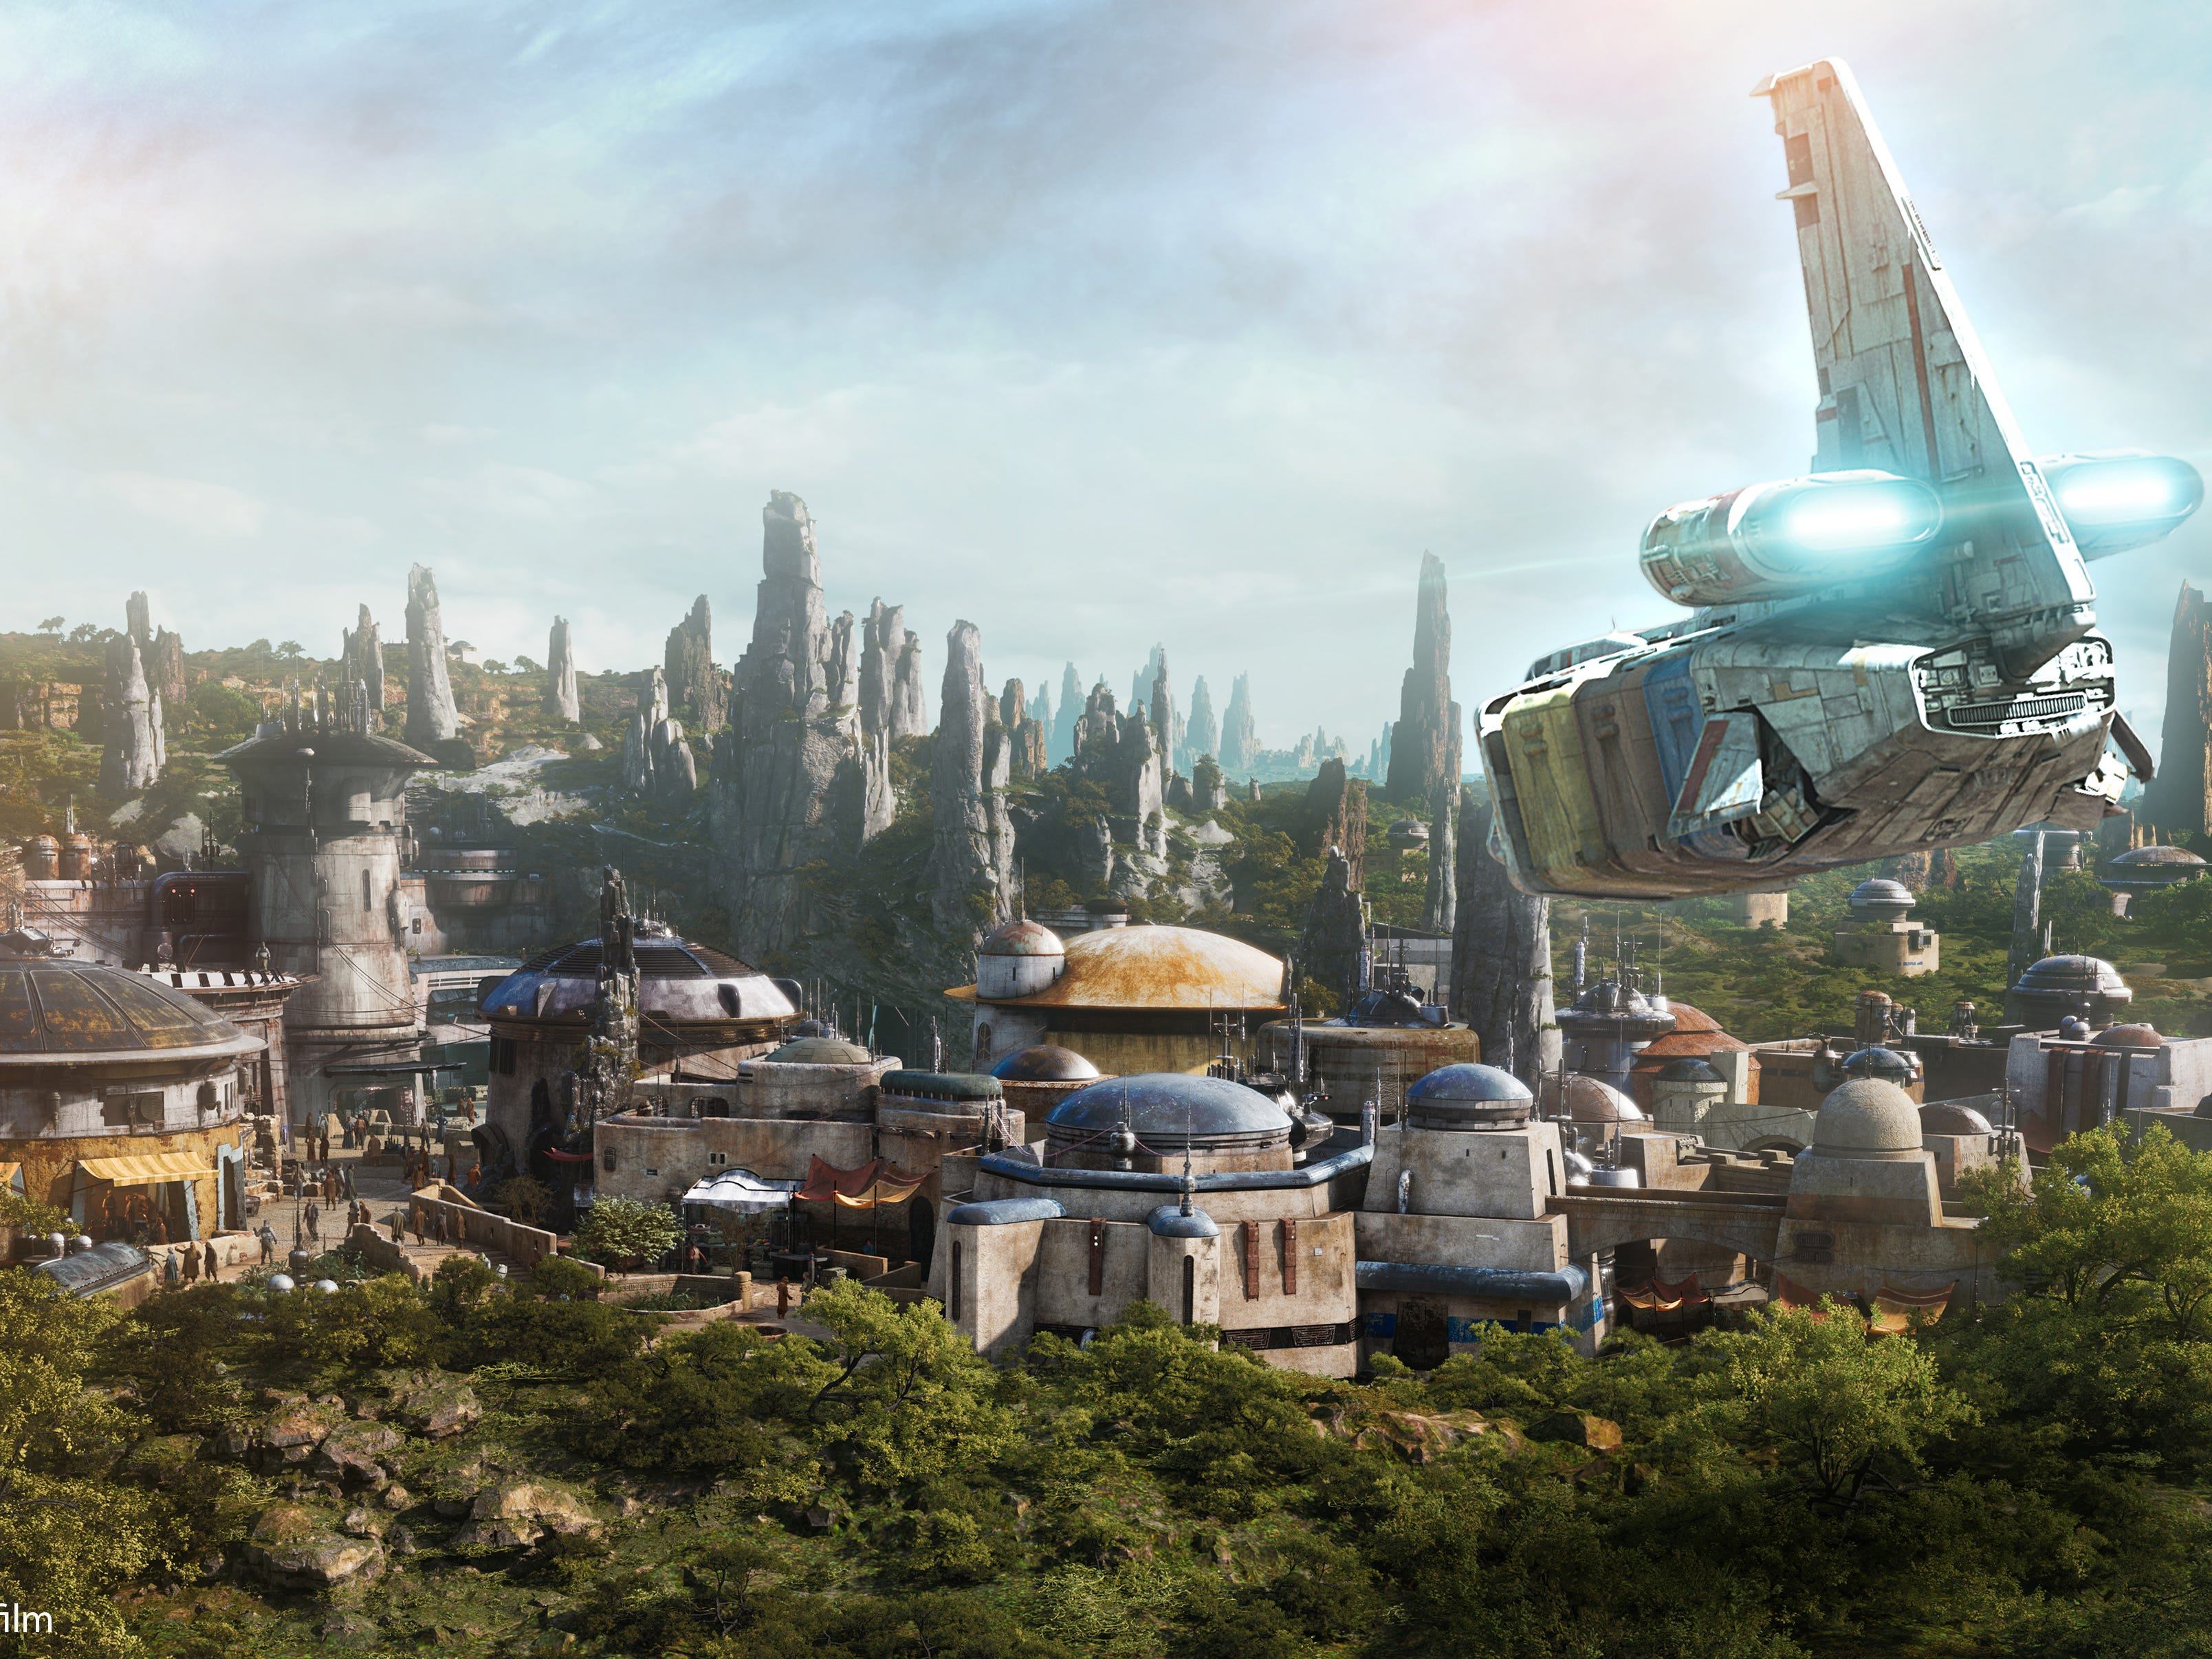 At 14 acres, Star Wars: Galaxy's Edge is Disney's largest single-themed land expansion ever. Guests live out their Star Wars adventures in the Black Spire Outpost, a village on the remote planet of Batuu.